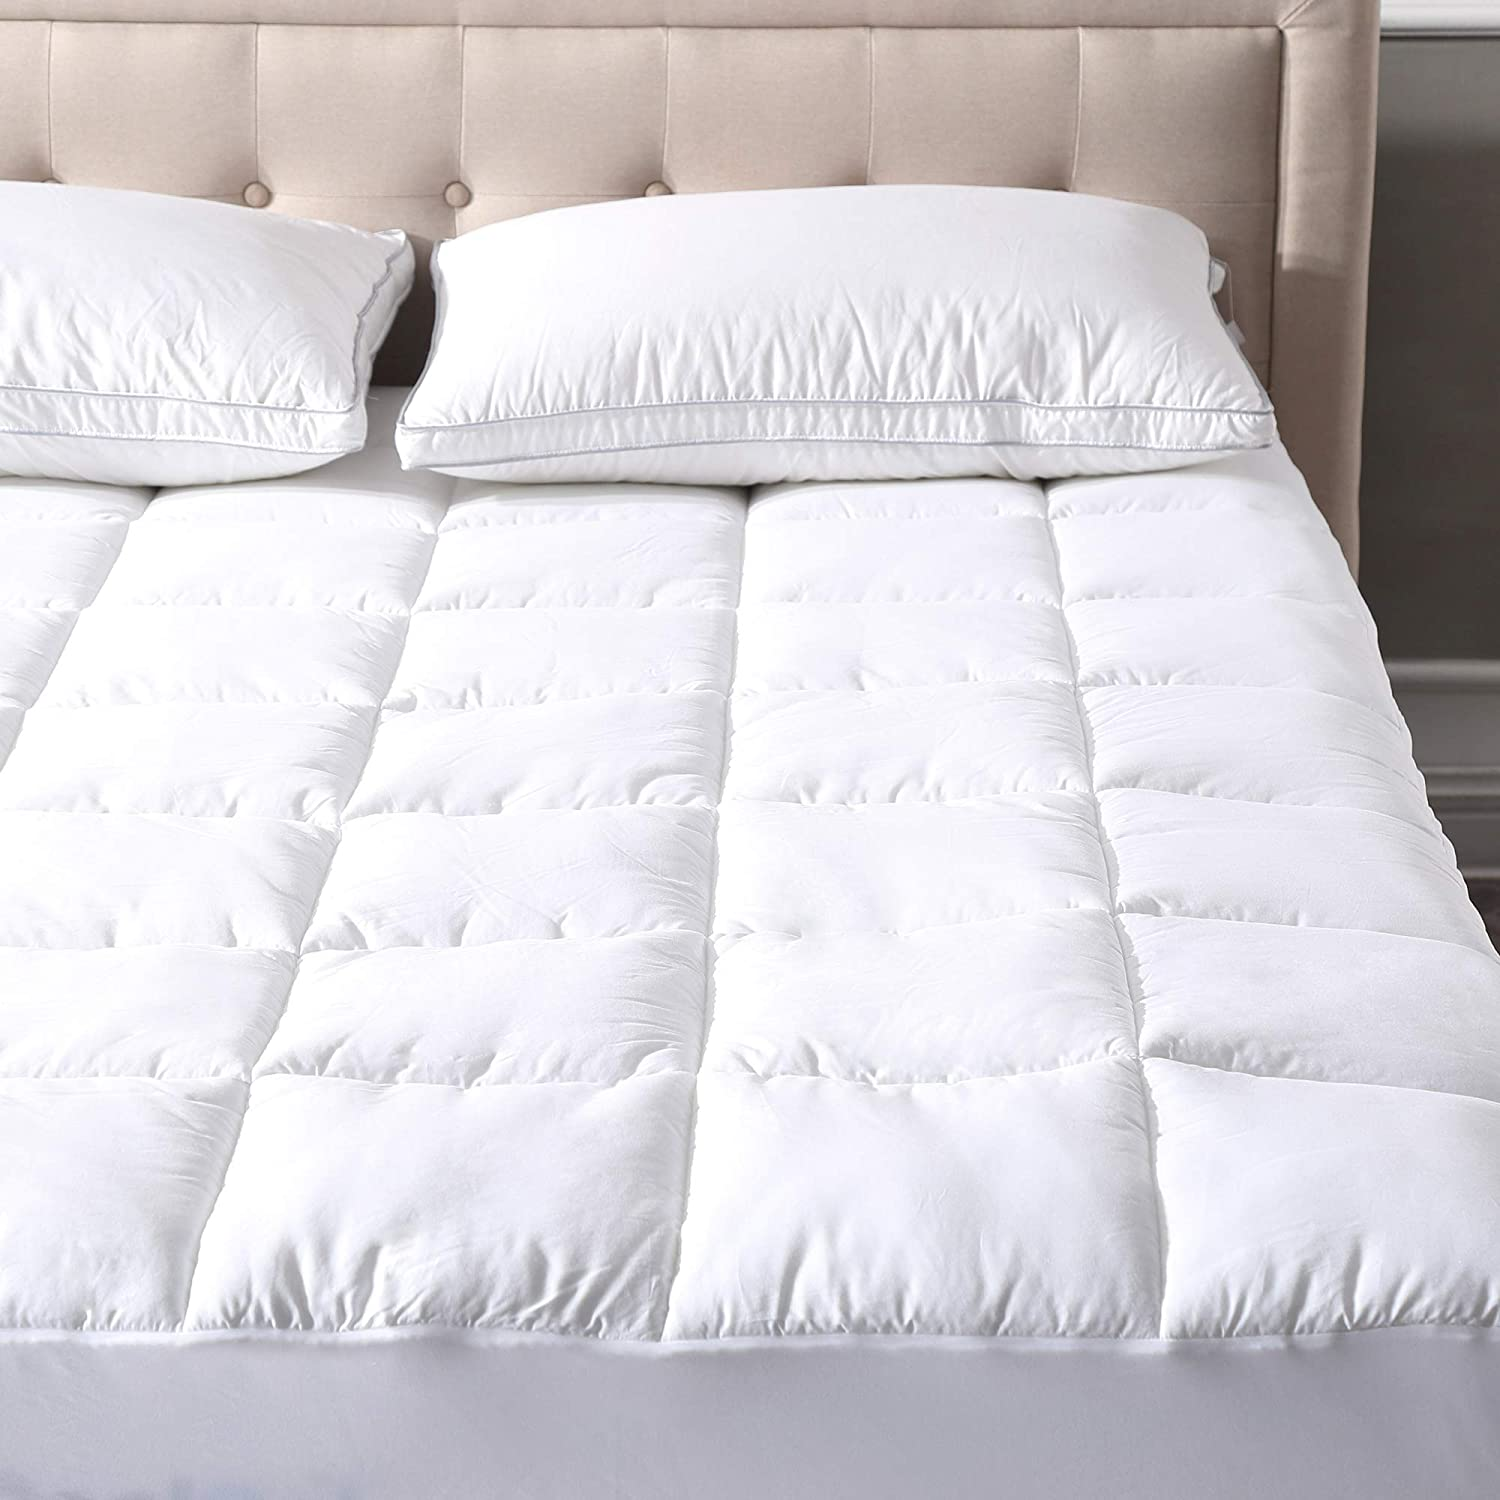 Classic Brands Today's only Defend-A-Bed Ultimate Down Alternative Max 58% OFF Waterproof